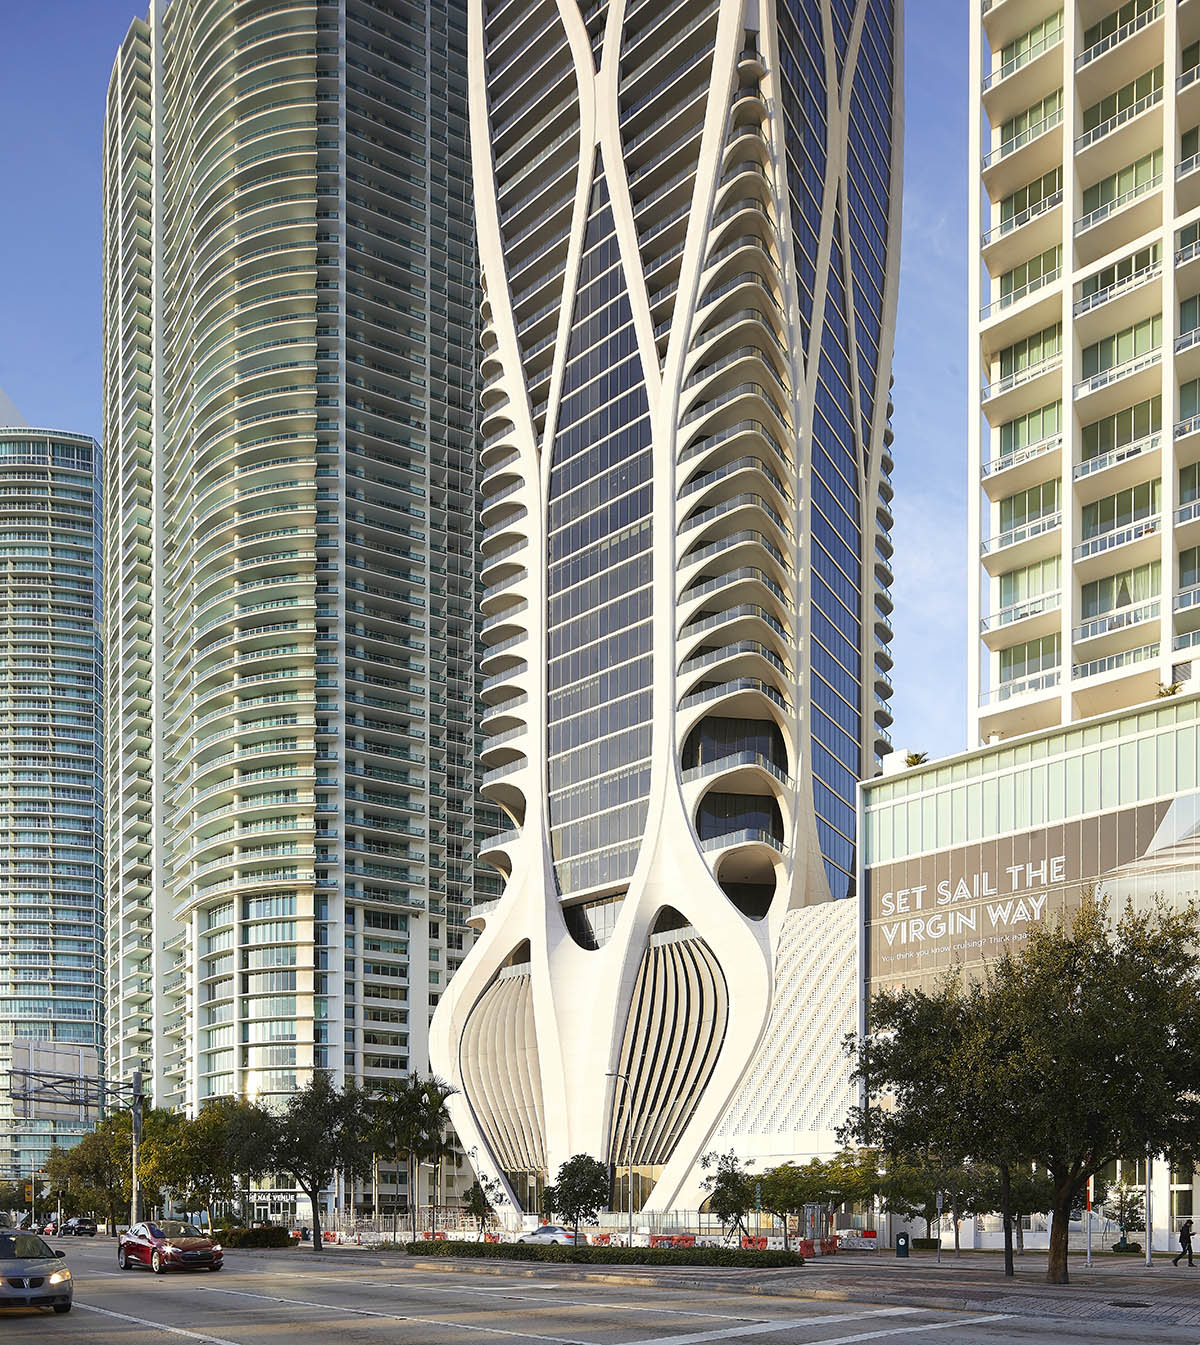 Zaha Hadid Architects recently completed One Thousand Museum has been photographed by architectural photographer Hufton + Crow in Miami, FL